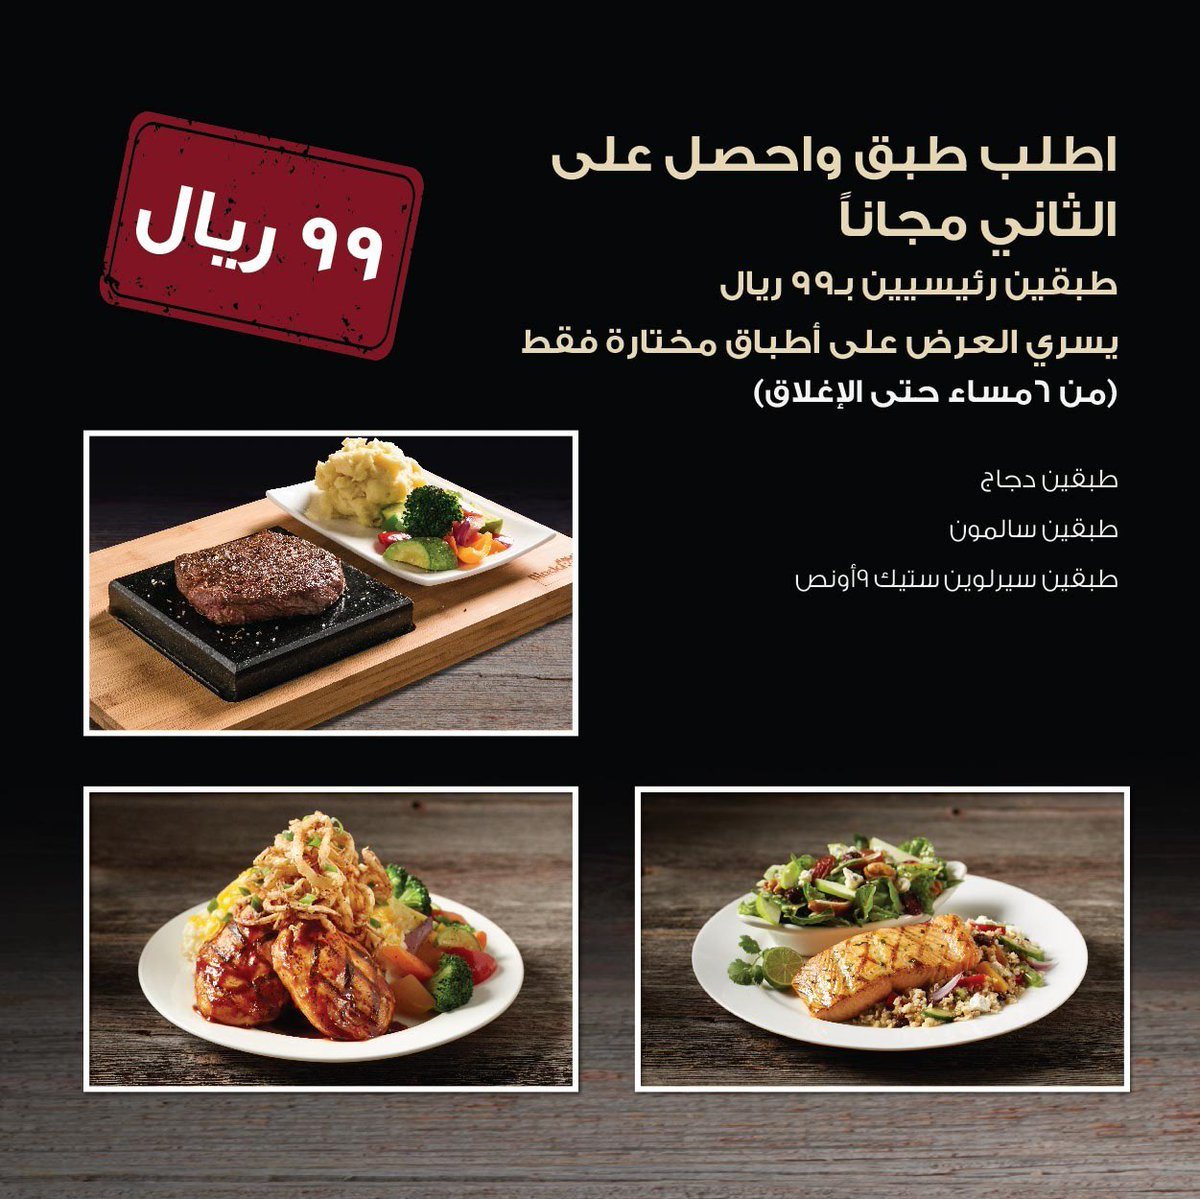 Steak House ستيك هاوس Steakhouseksa Twitter